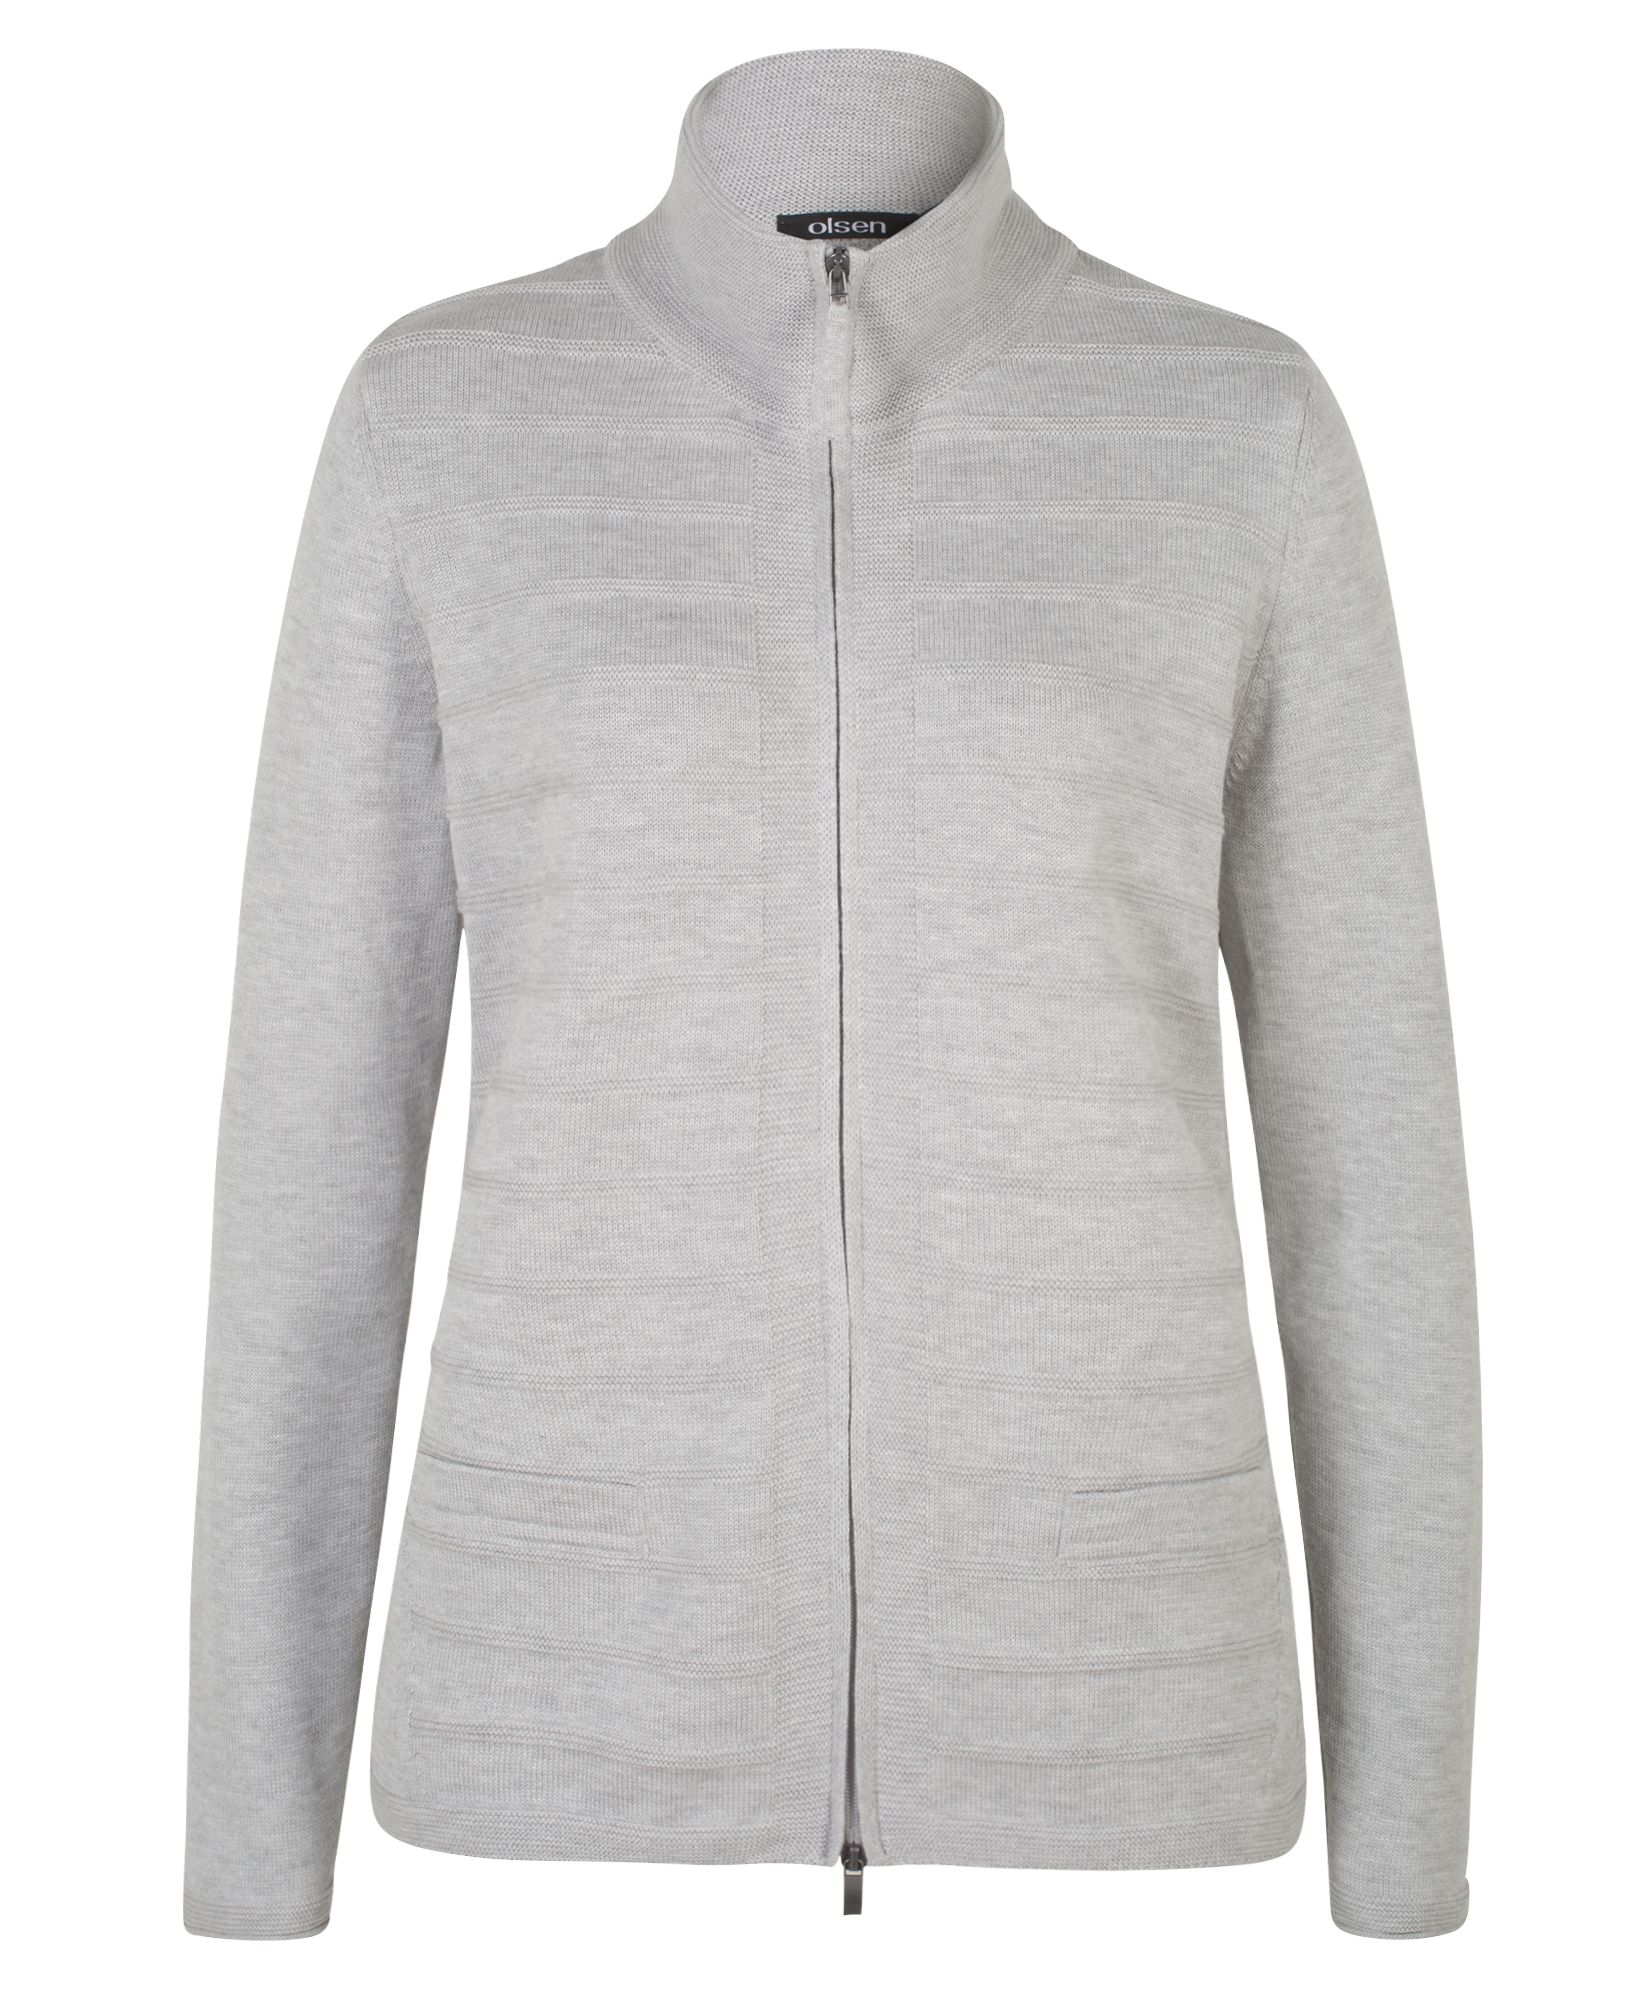 Olsen Cardigan With Zipper, Silver Marl